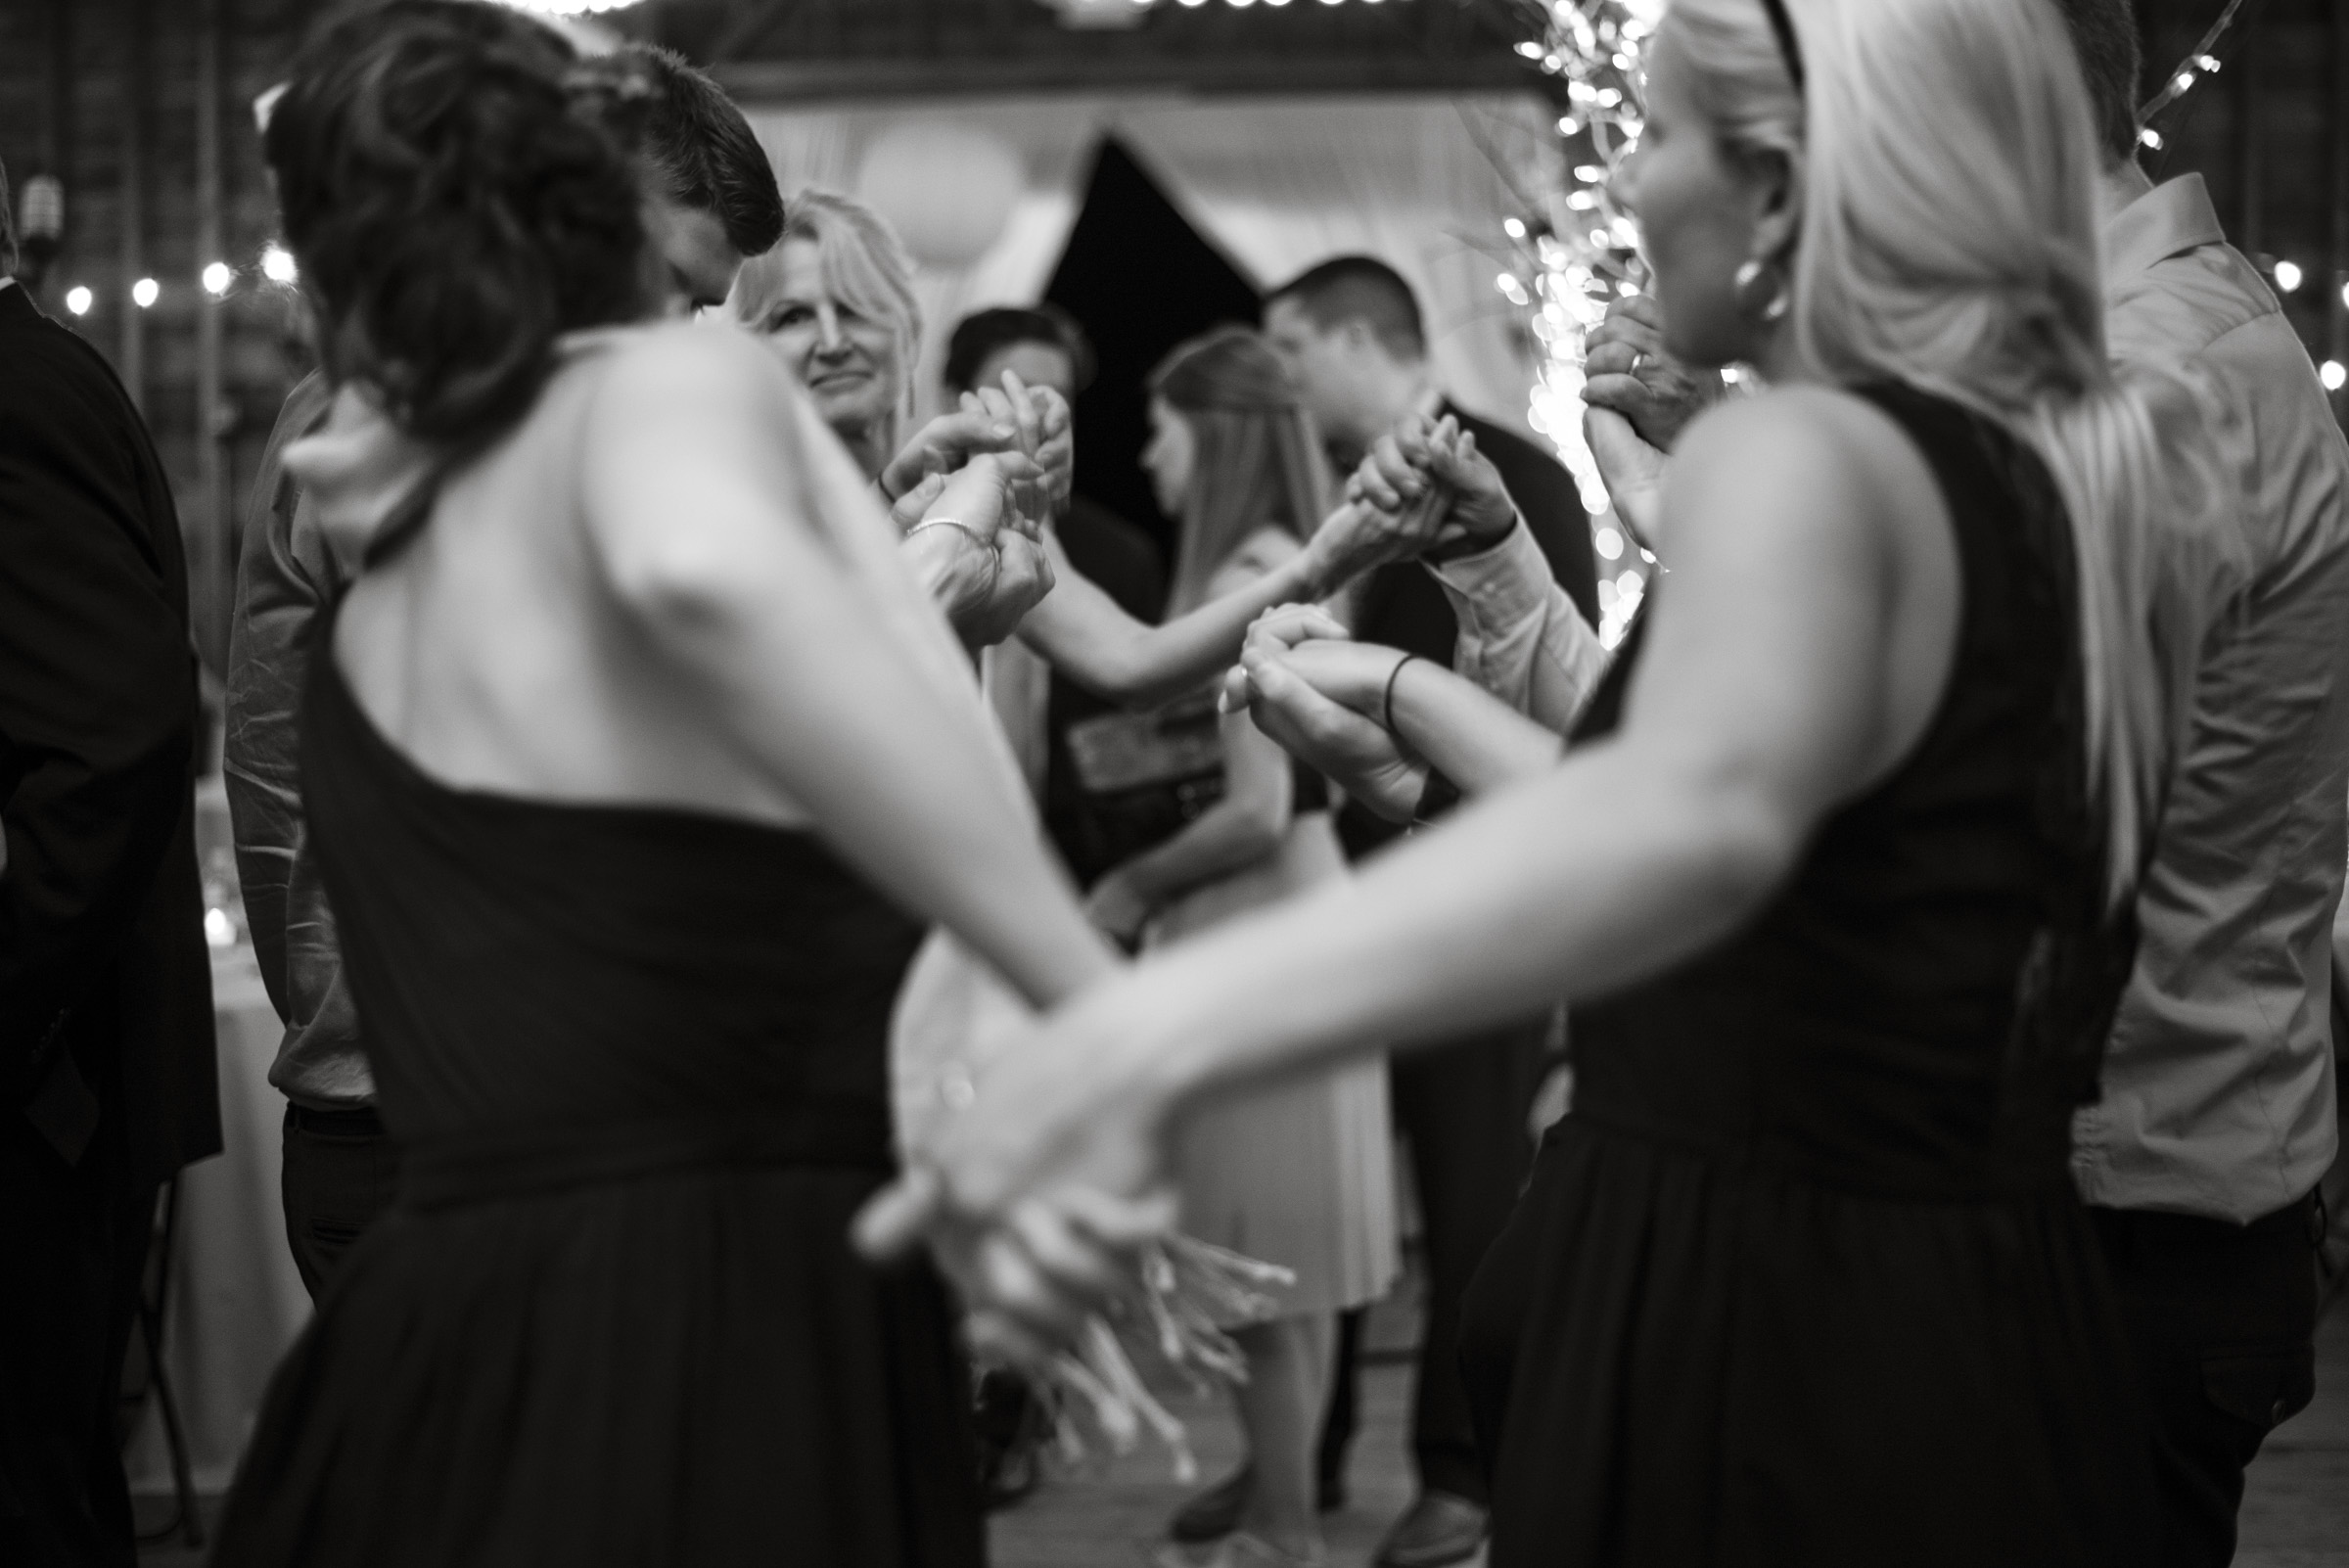 08232014-Chris&VanessaWedding-JuliaLuckettPhotography-654